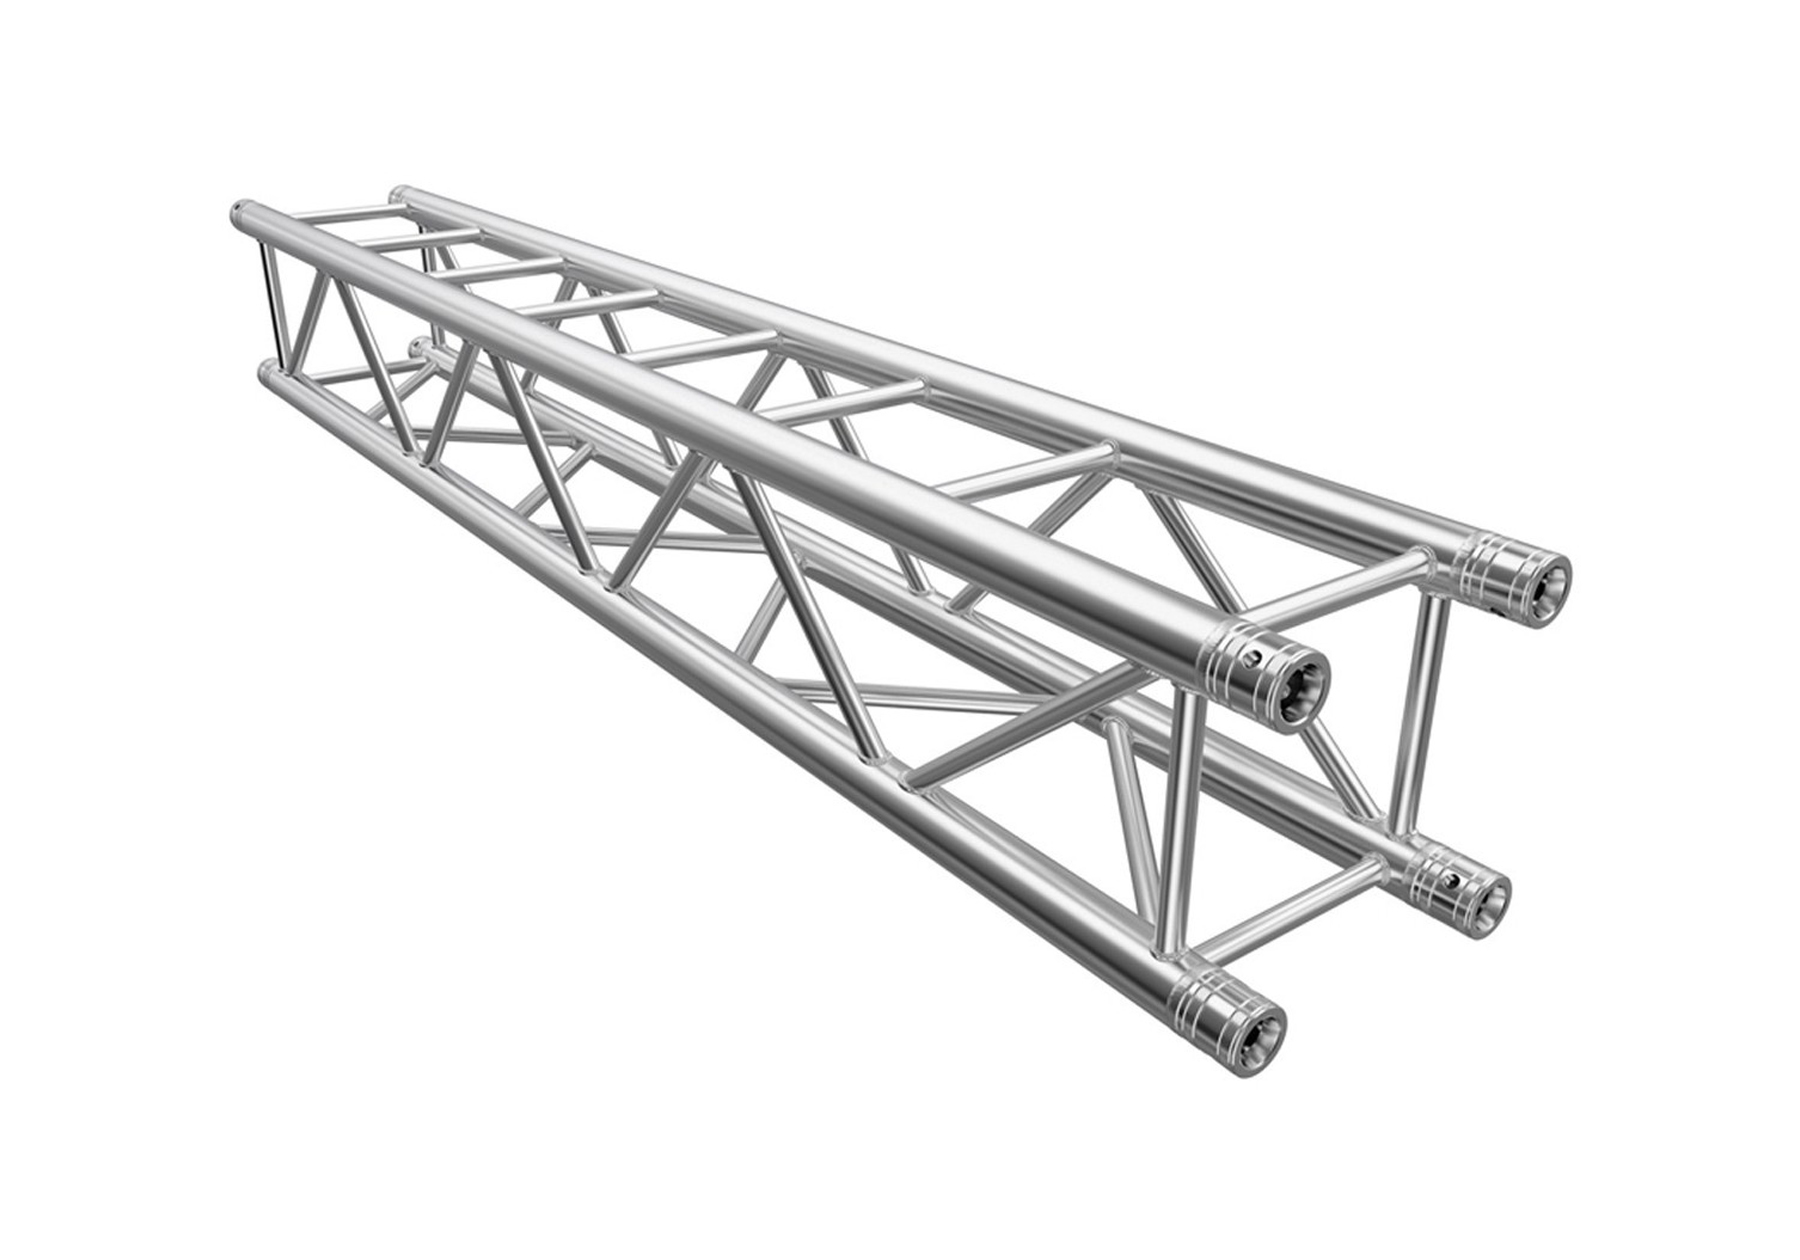 Hire Global Truss F34-PL, MIlos M290 heavy lighting event trussing Cardiff, Swansea, Newport, Carmarthenshire, Pembrokeshire & South West Wales